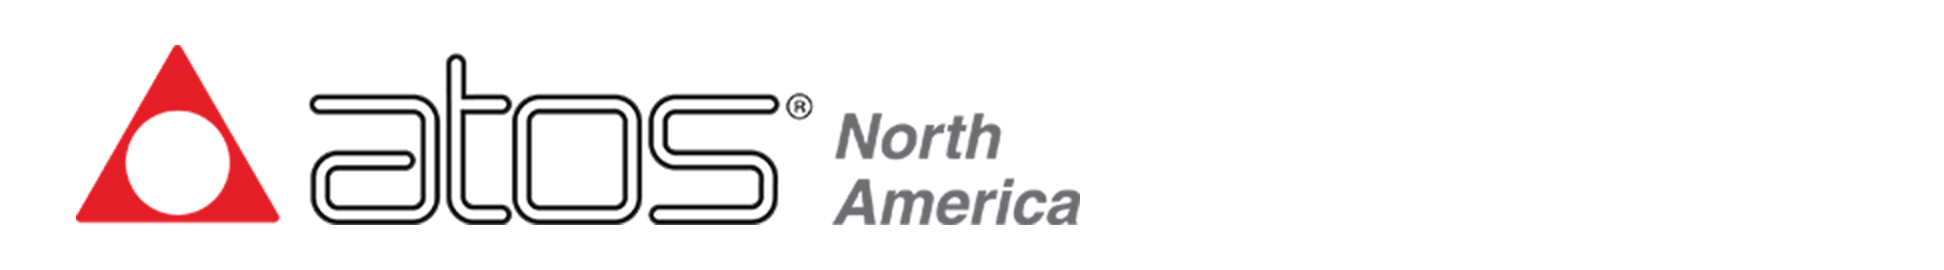 Atos North America